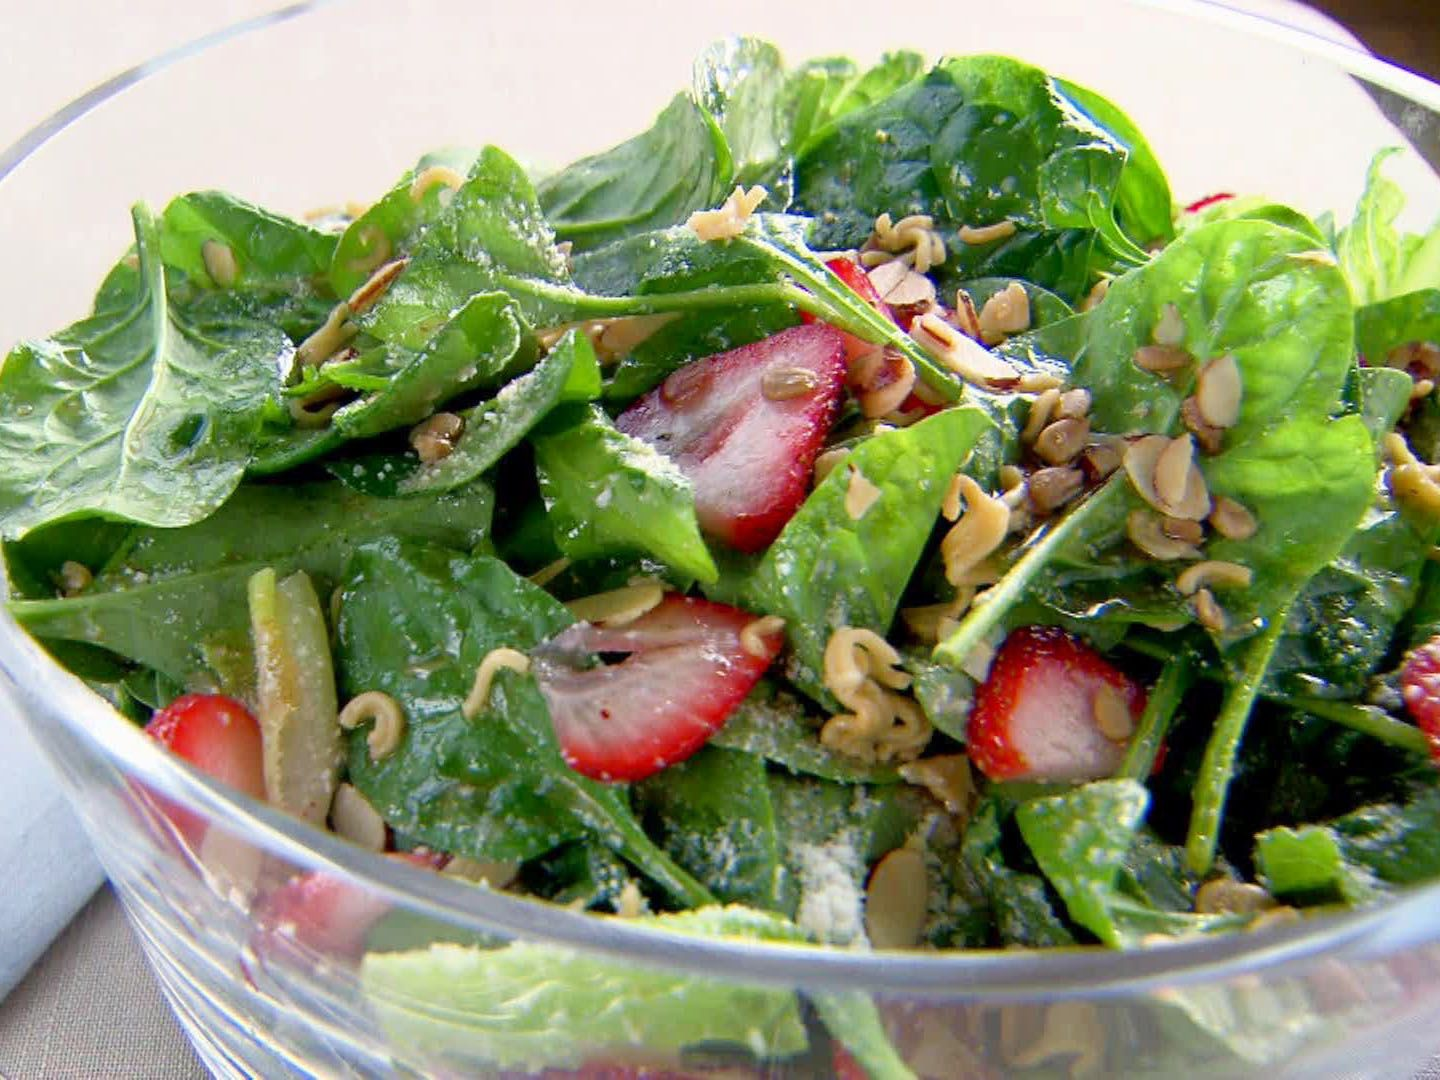 Strawberry salad recipe budget meal planning easter dinner and strawberry salad recipe budget meal planning easter dinner and parmesan forumfinder